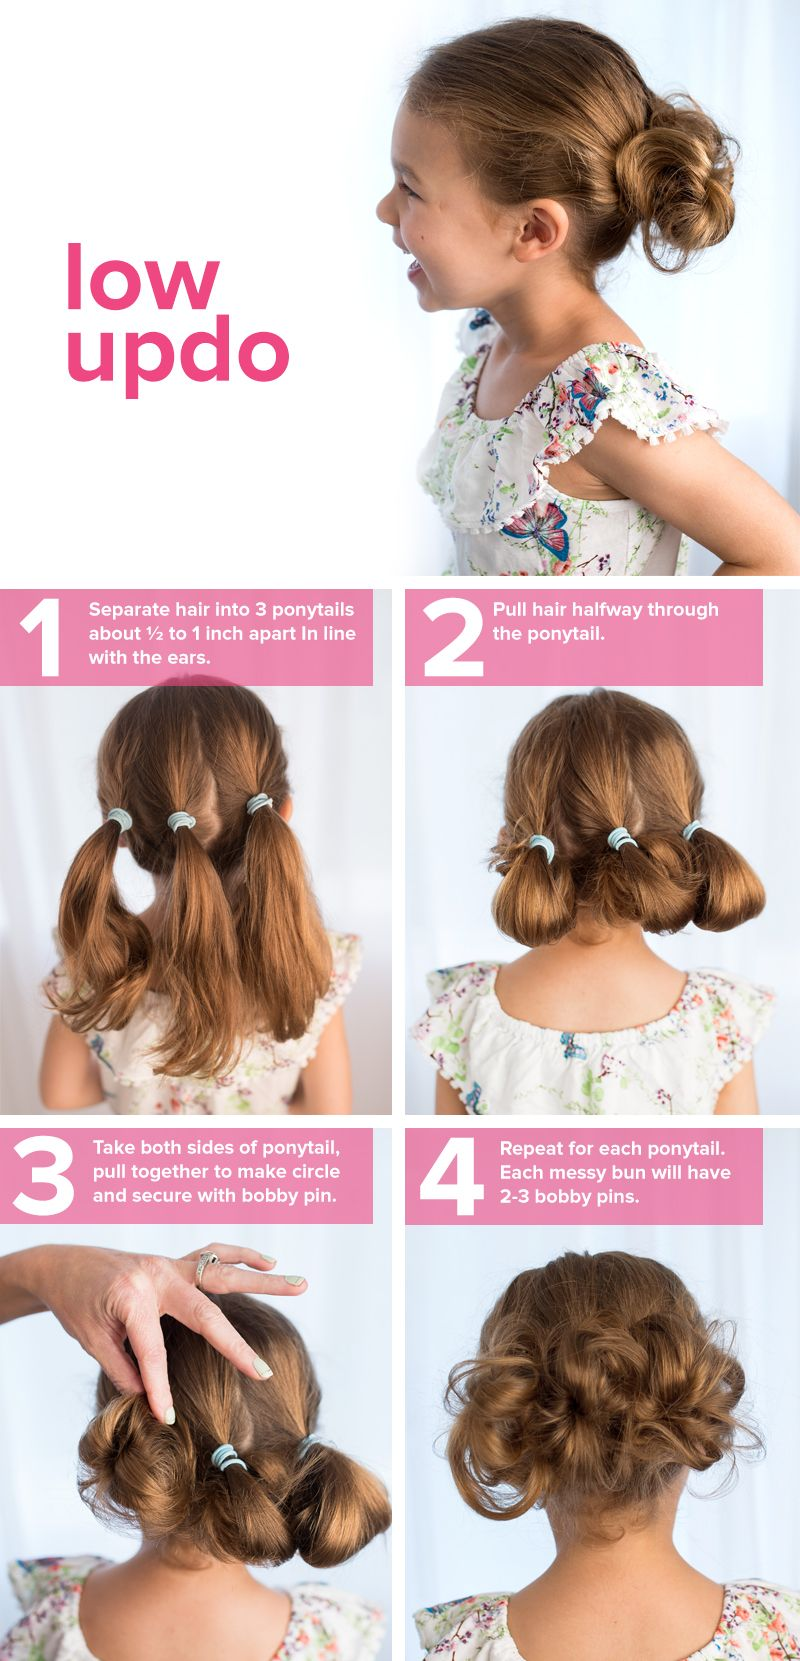 Fast And Easy Hairstyles Endearing 5 Fast Easy Cute Hairstyles For Girls  Pinterest  Low Updo Updo